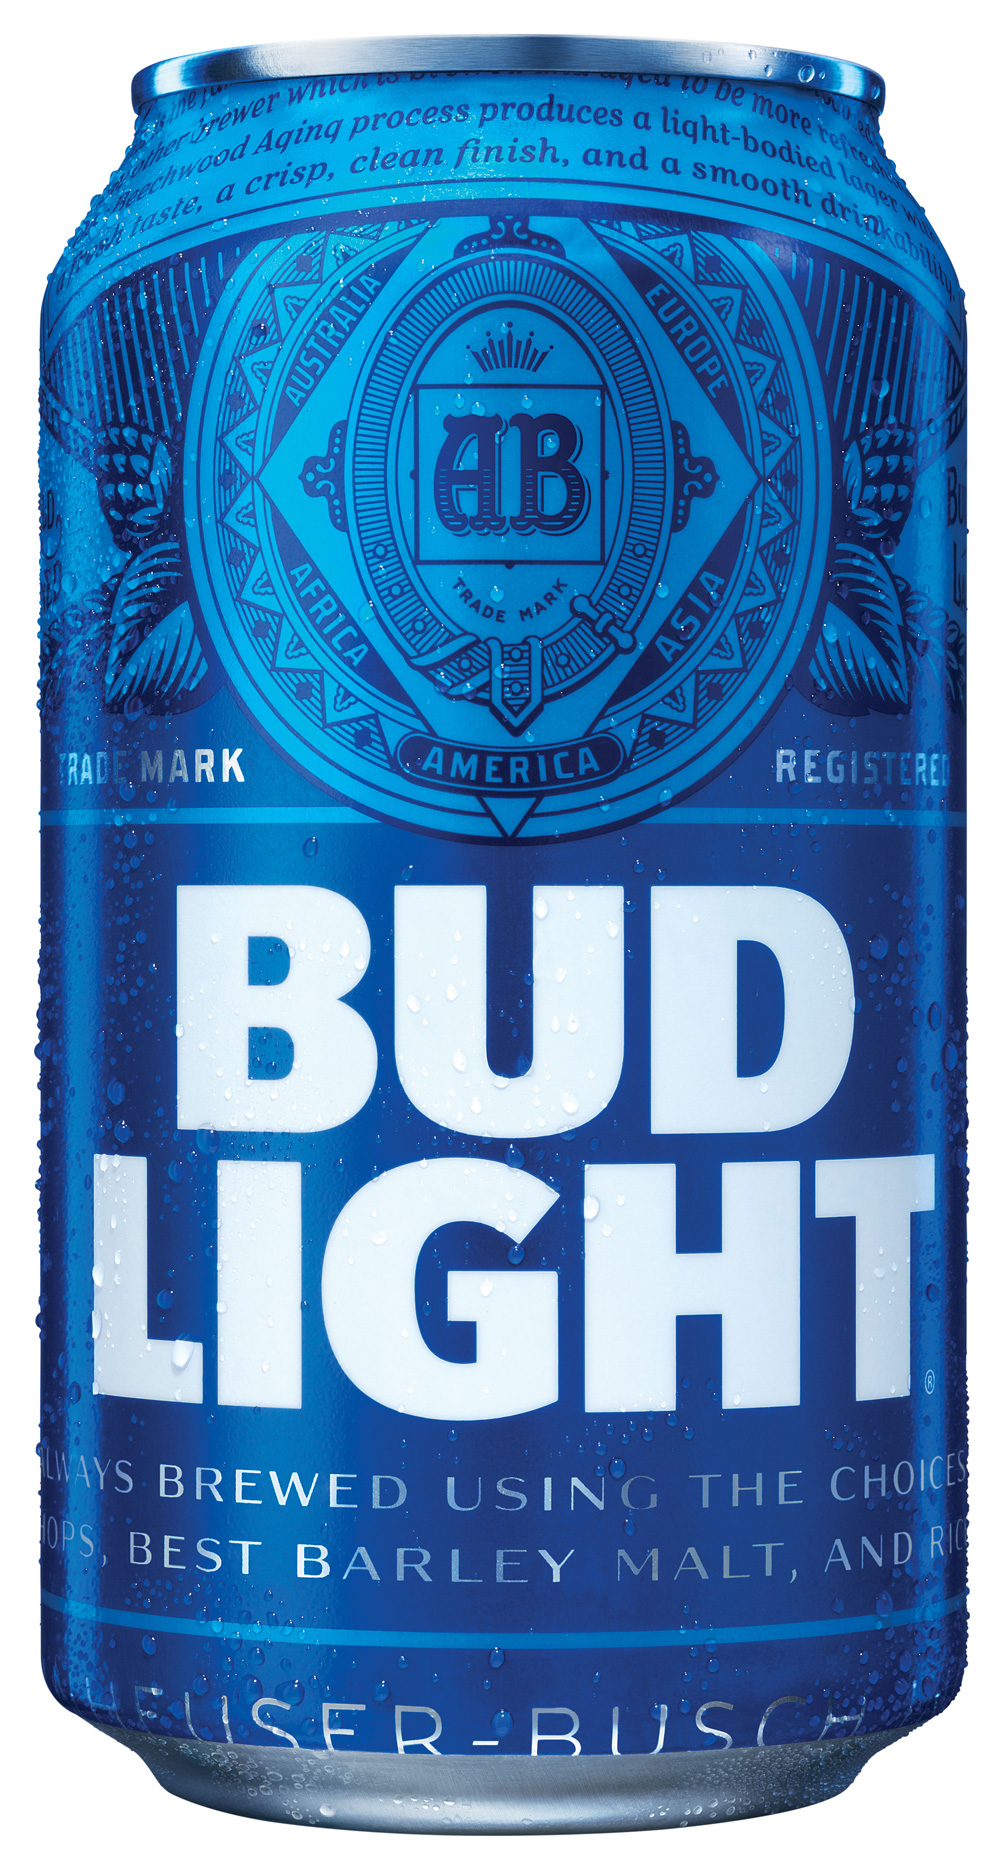 brand new new packaging for bud light by jones knowles. Black Bedroom Furniture Sets. Home Design Ideas